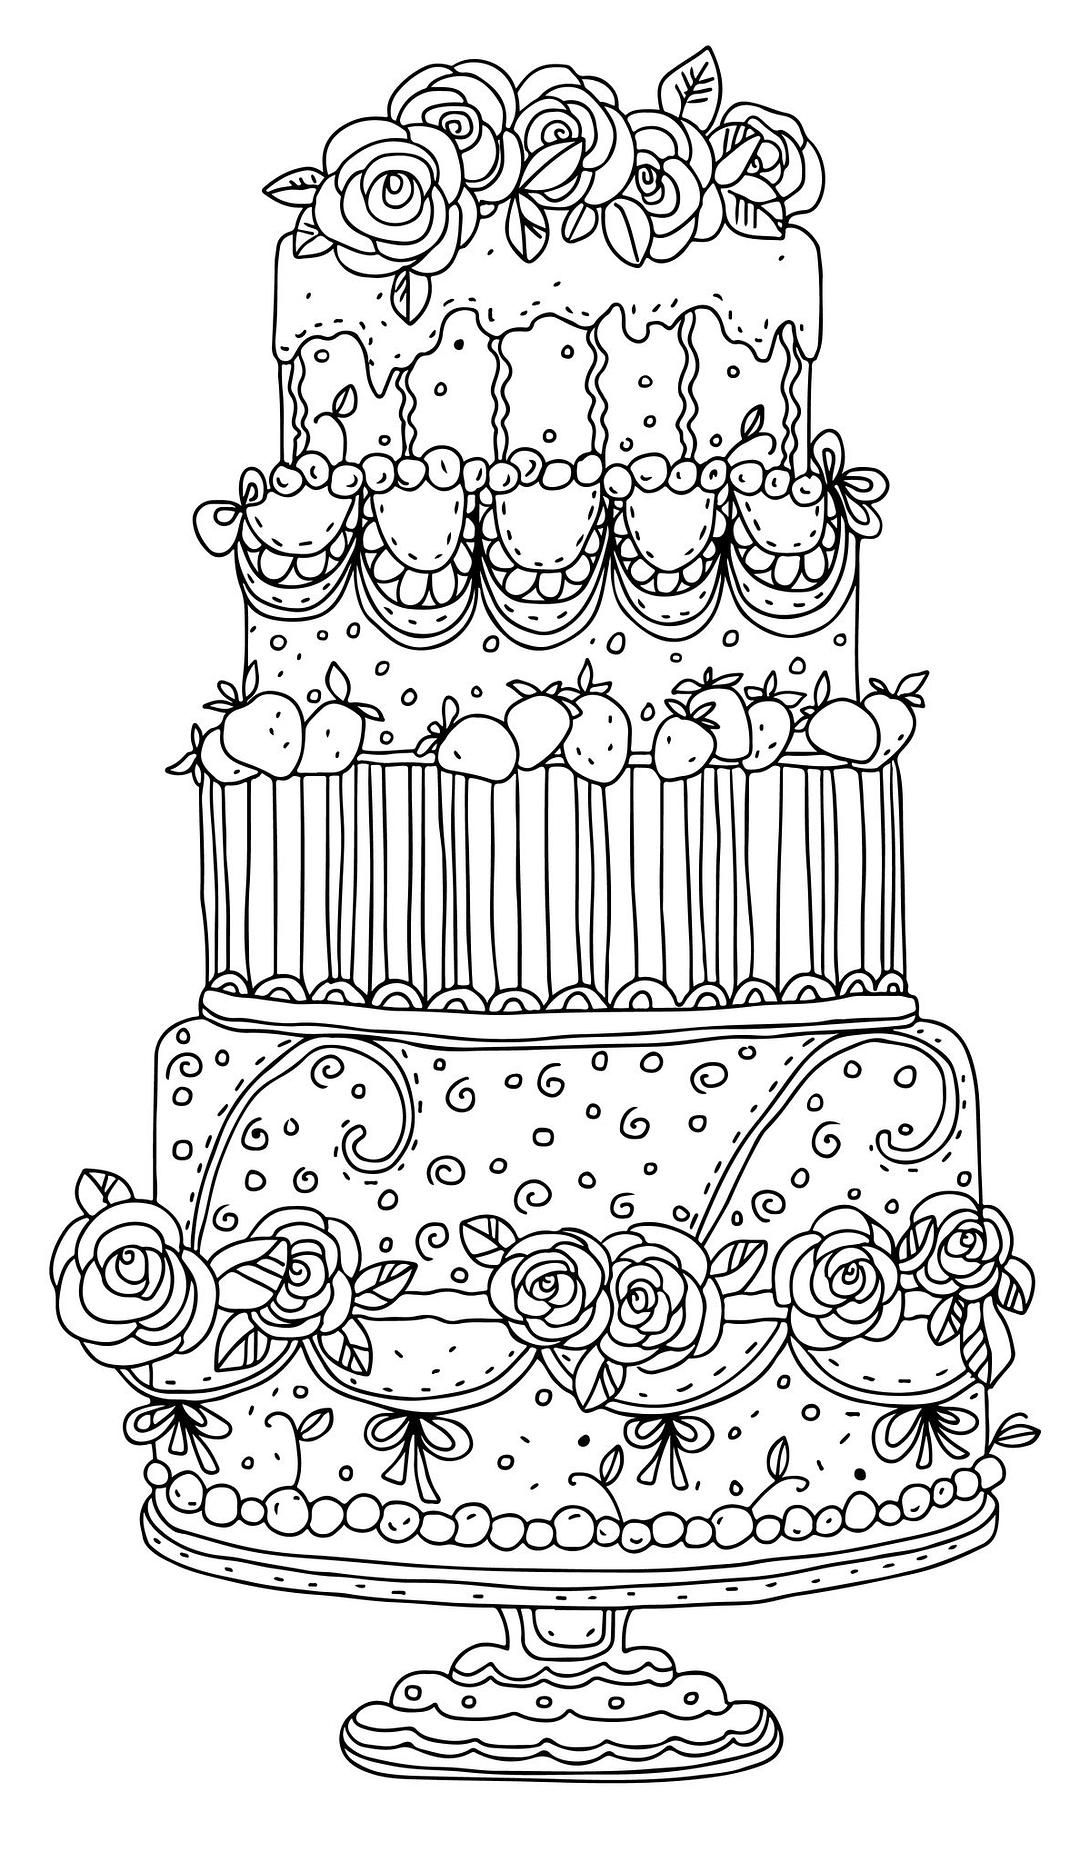 cake coloring pages to print cake coloring page coloring home print to cake pages coloring